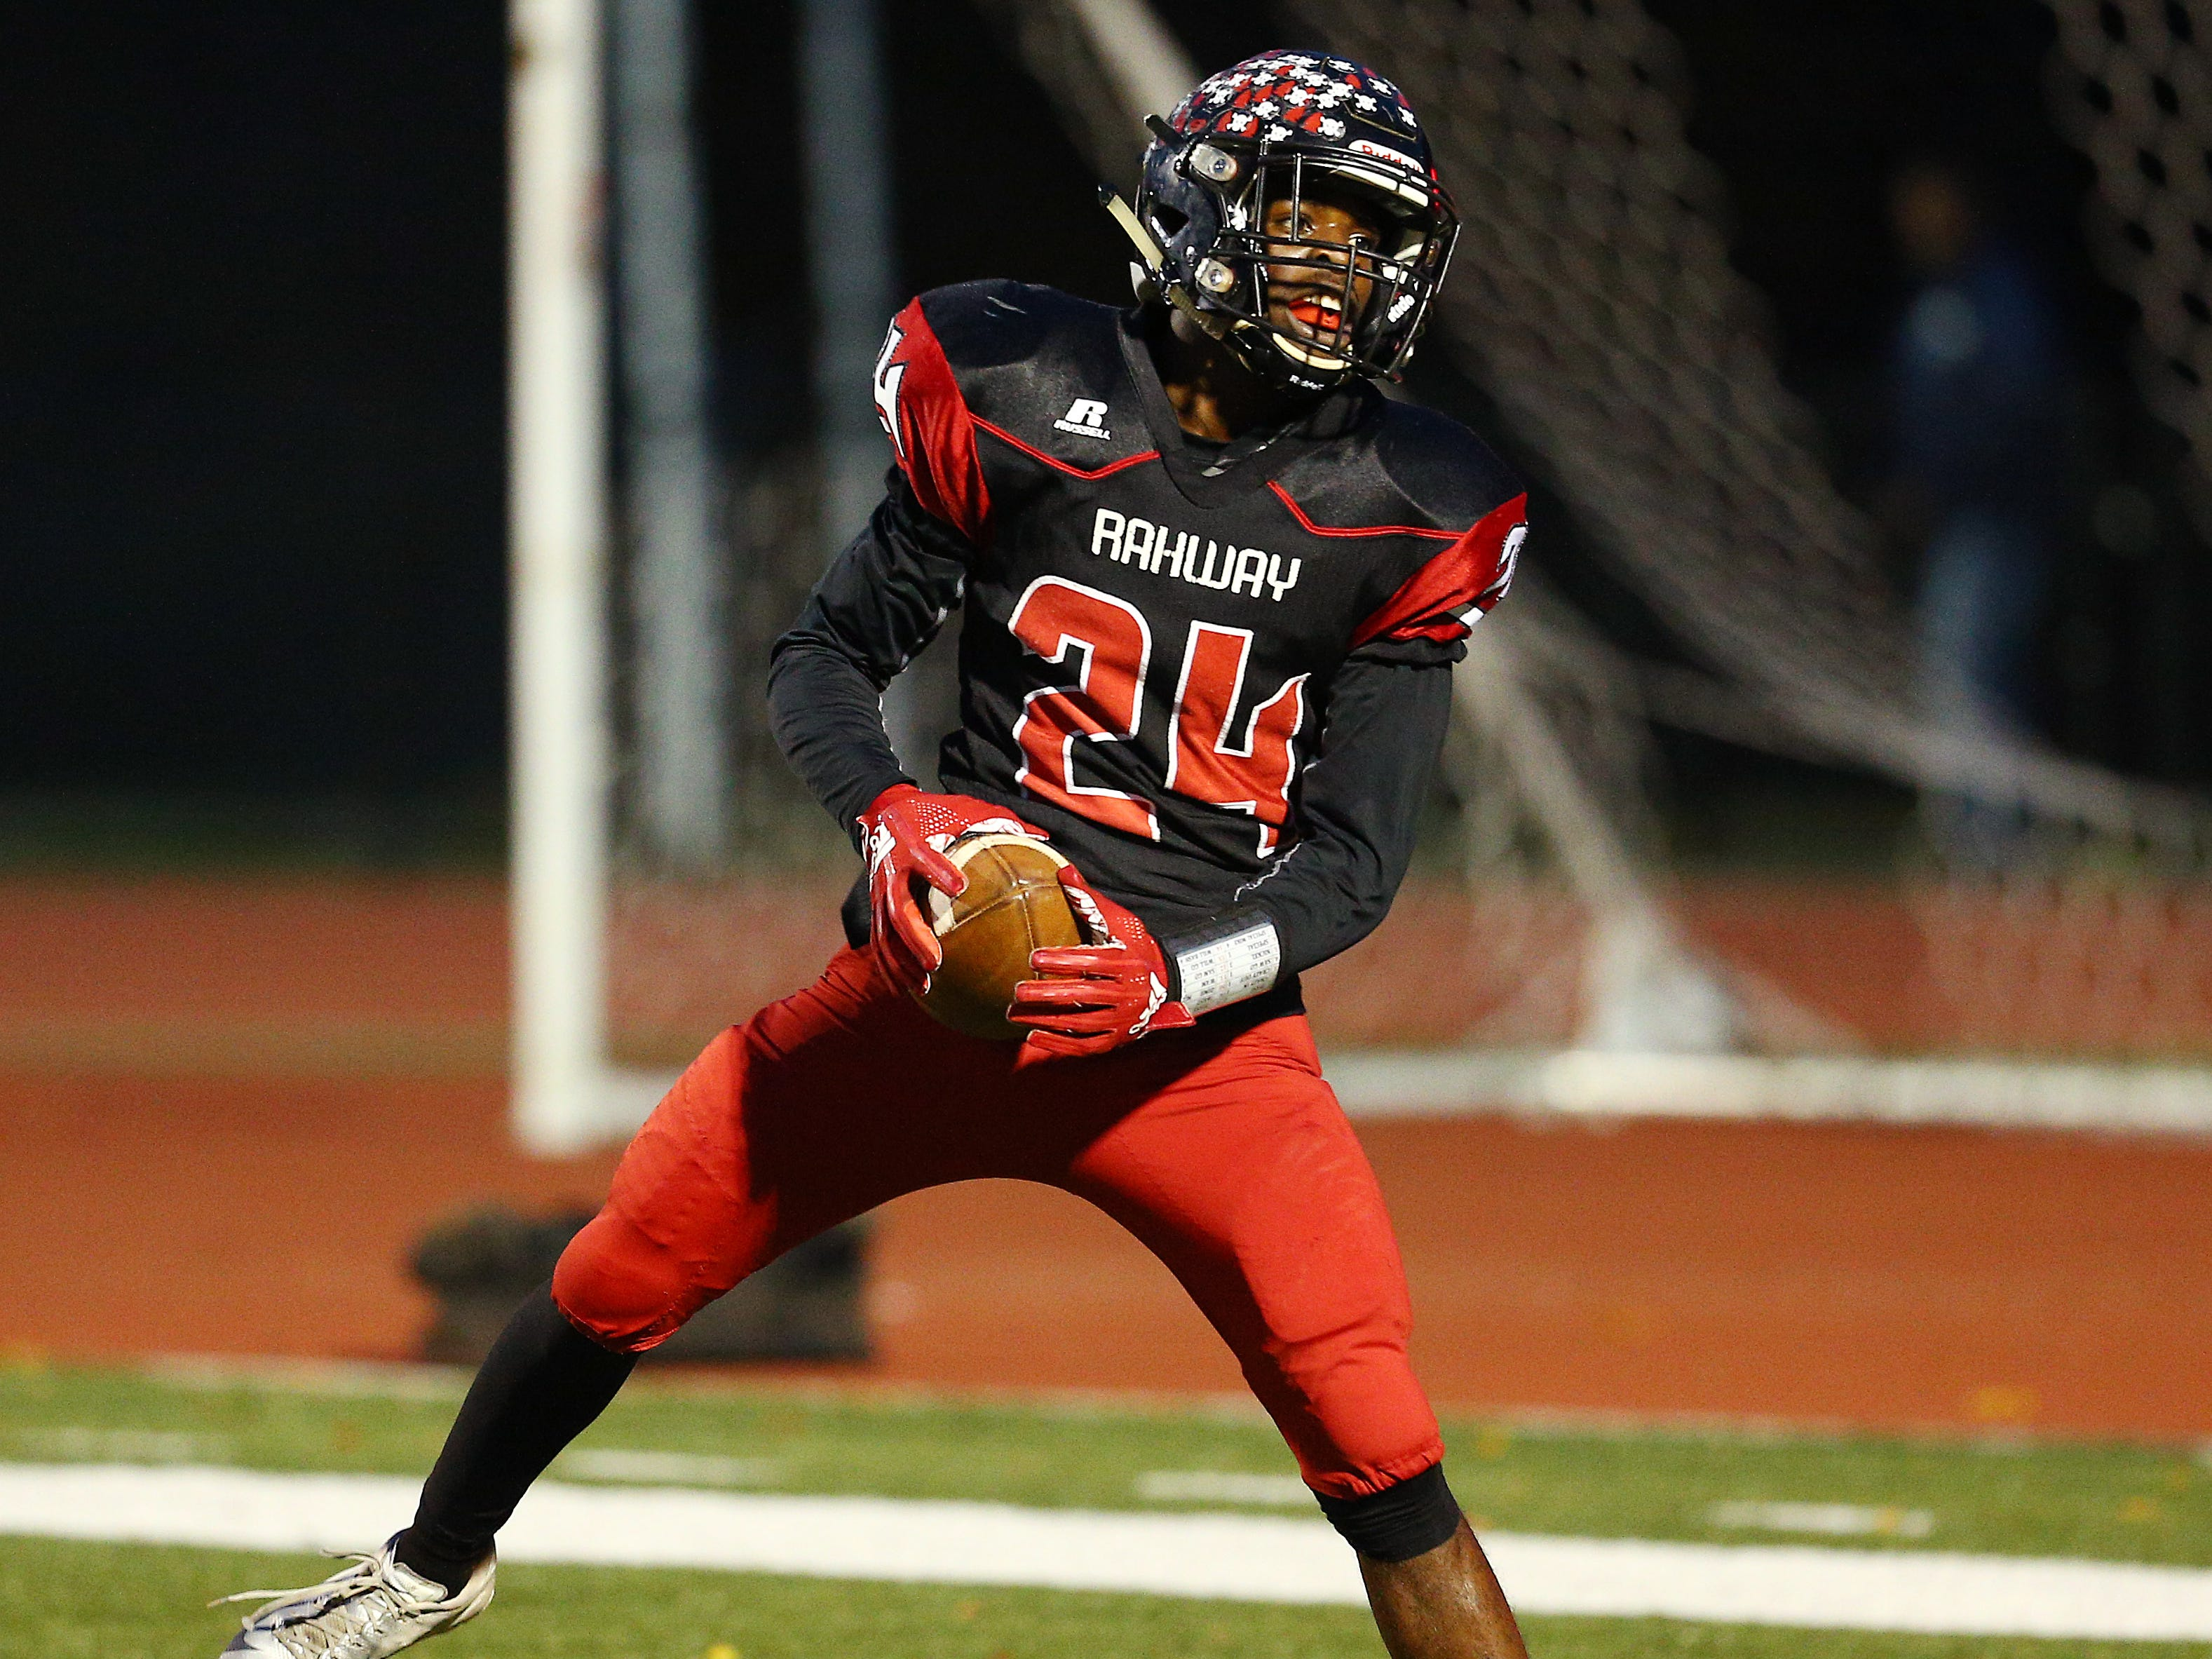 Rahway's Zi'on Pendleton celebrates a first half touchdown vs. Parsippany Hills during their NJSIAA North 2 Group III football quarterfinal at Rahway River Park. November 2, 2018, Rahway, NJ